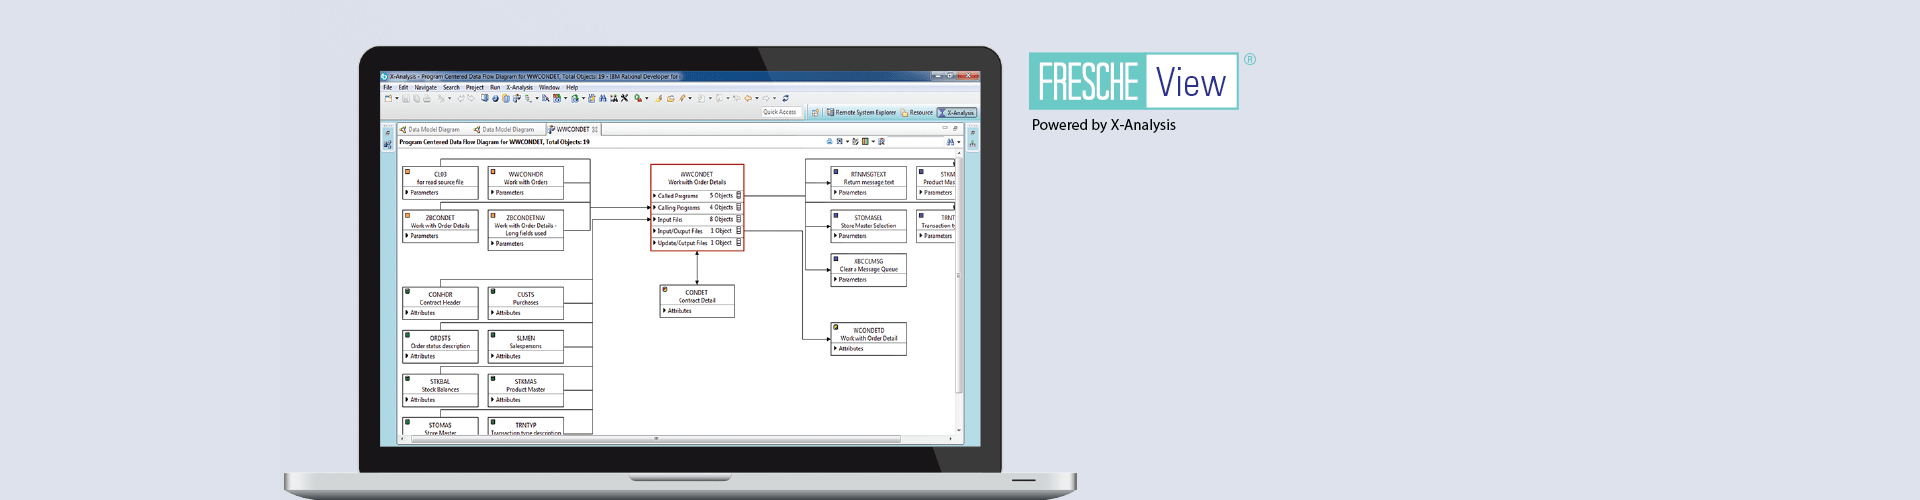 Speed Up IBM i Development and Reduce Maintenance with Fresche View